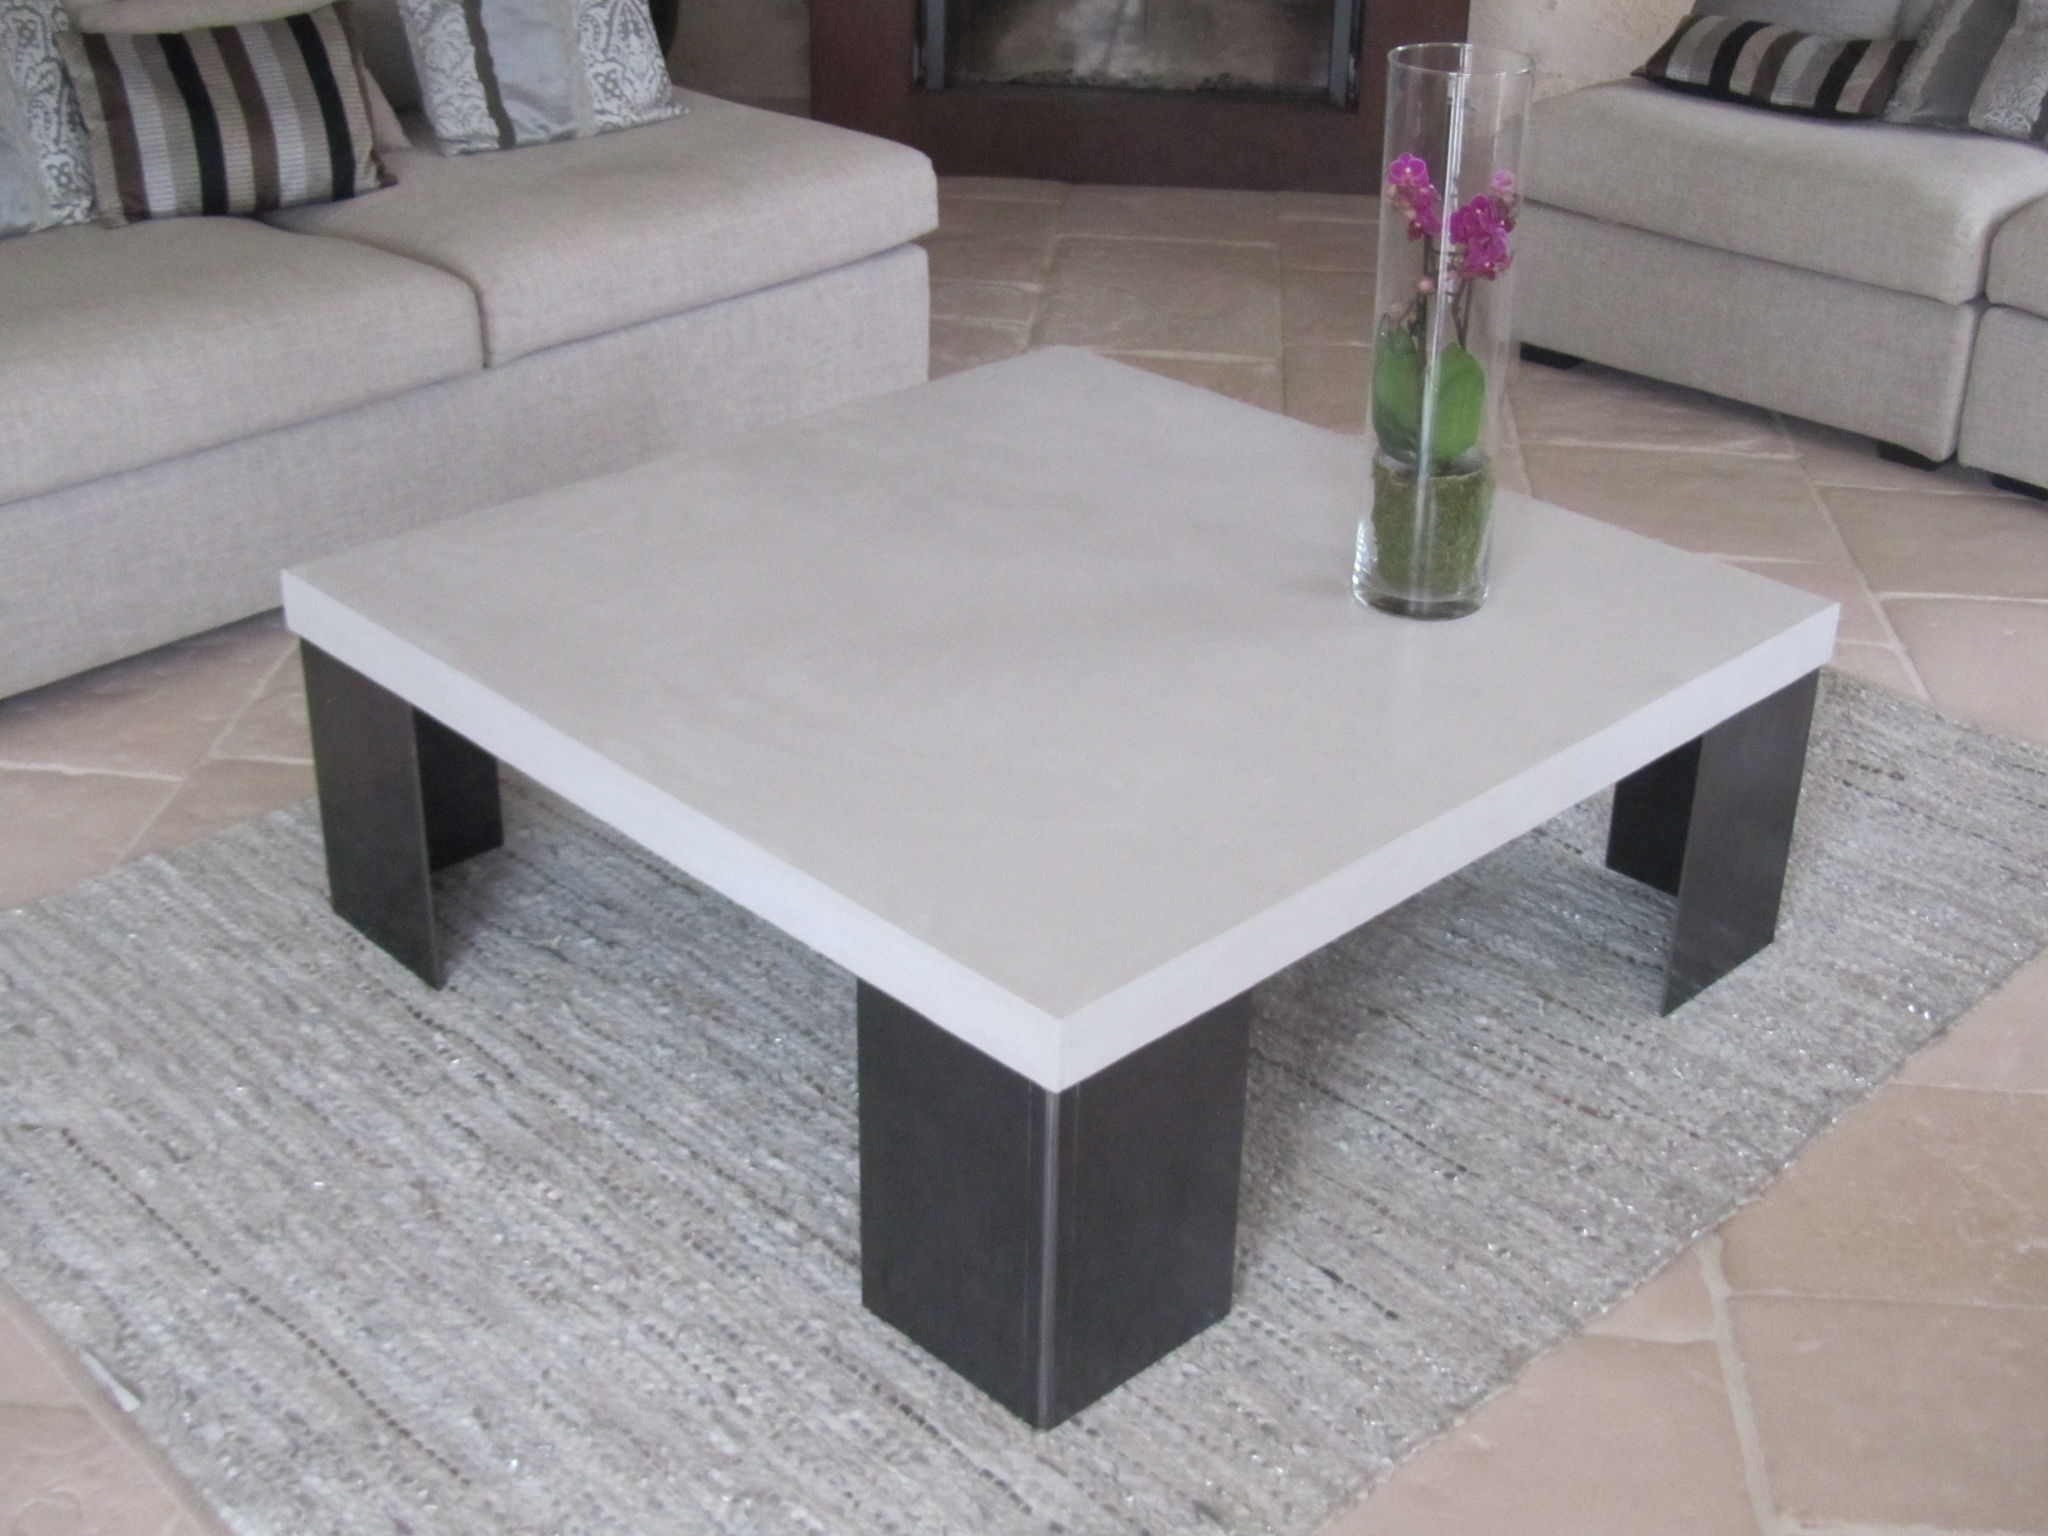 Table en beton cire pied en acier photo de beton cire - Table de salon en beton cire ...